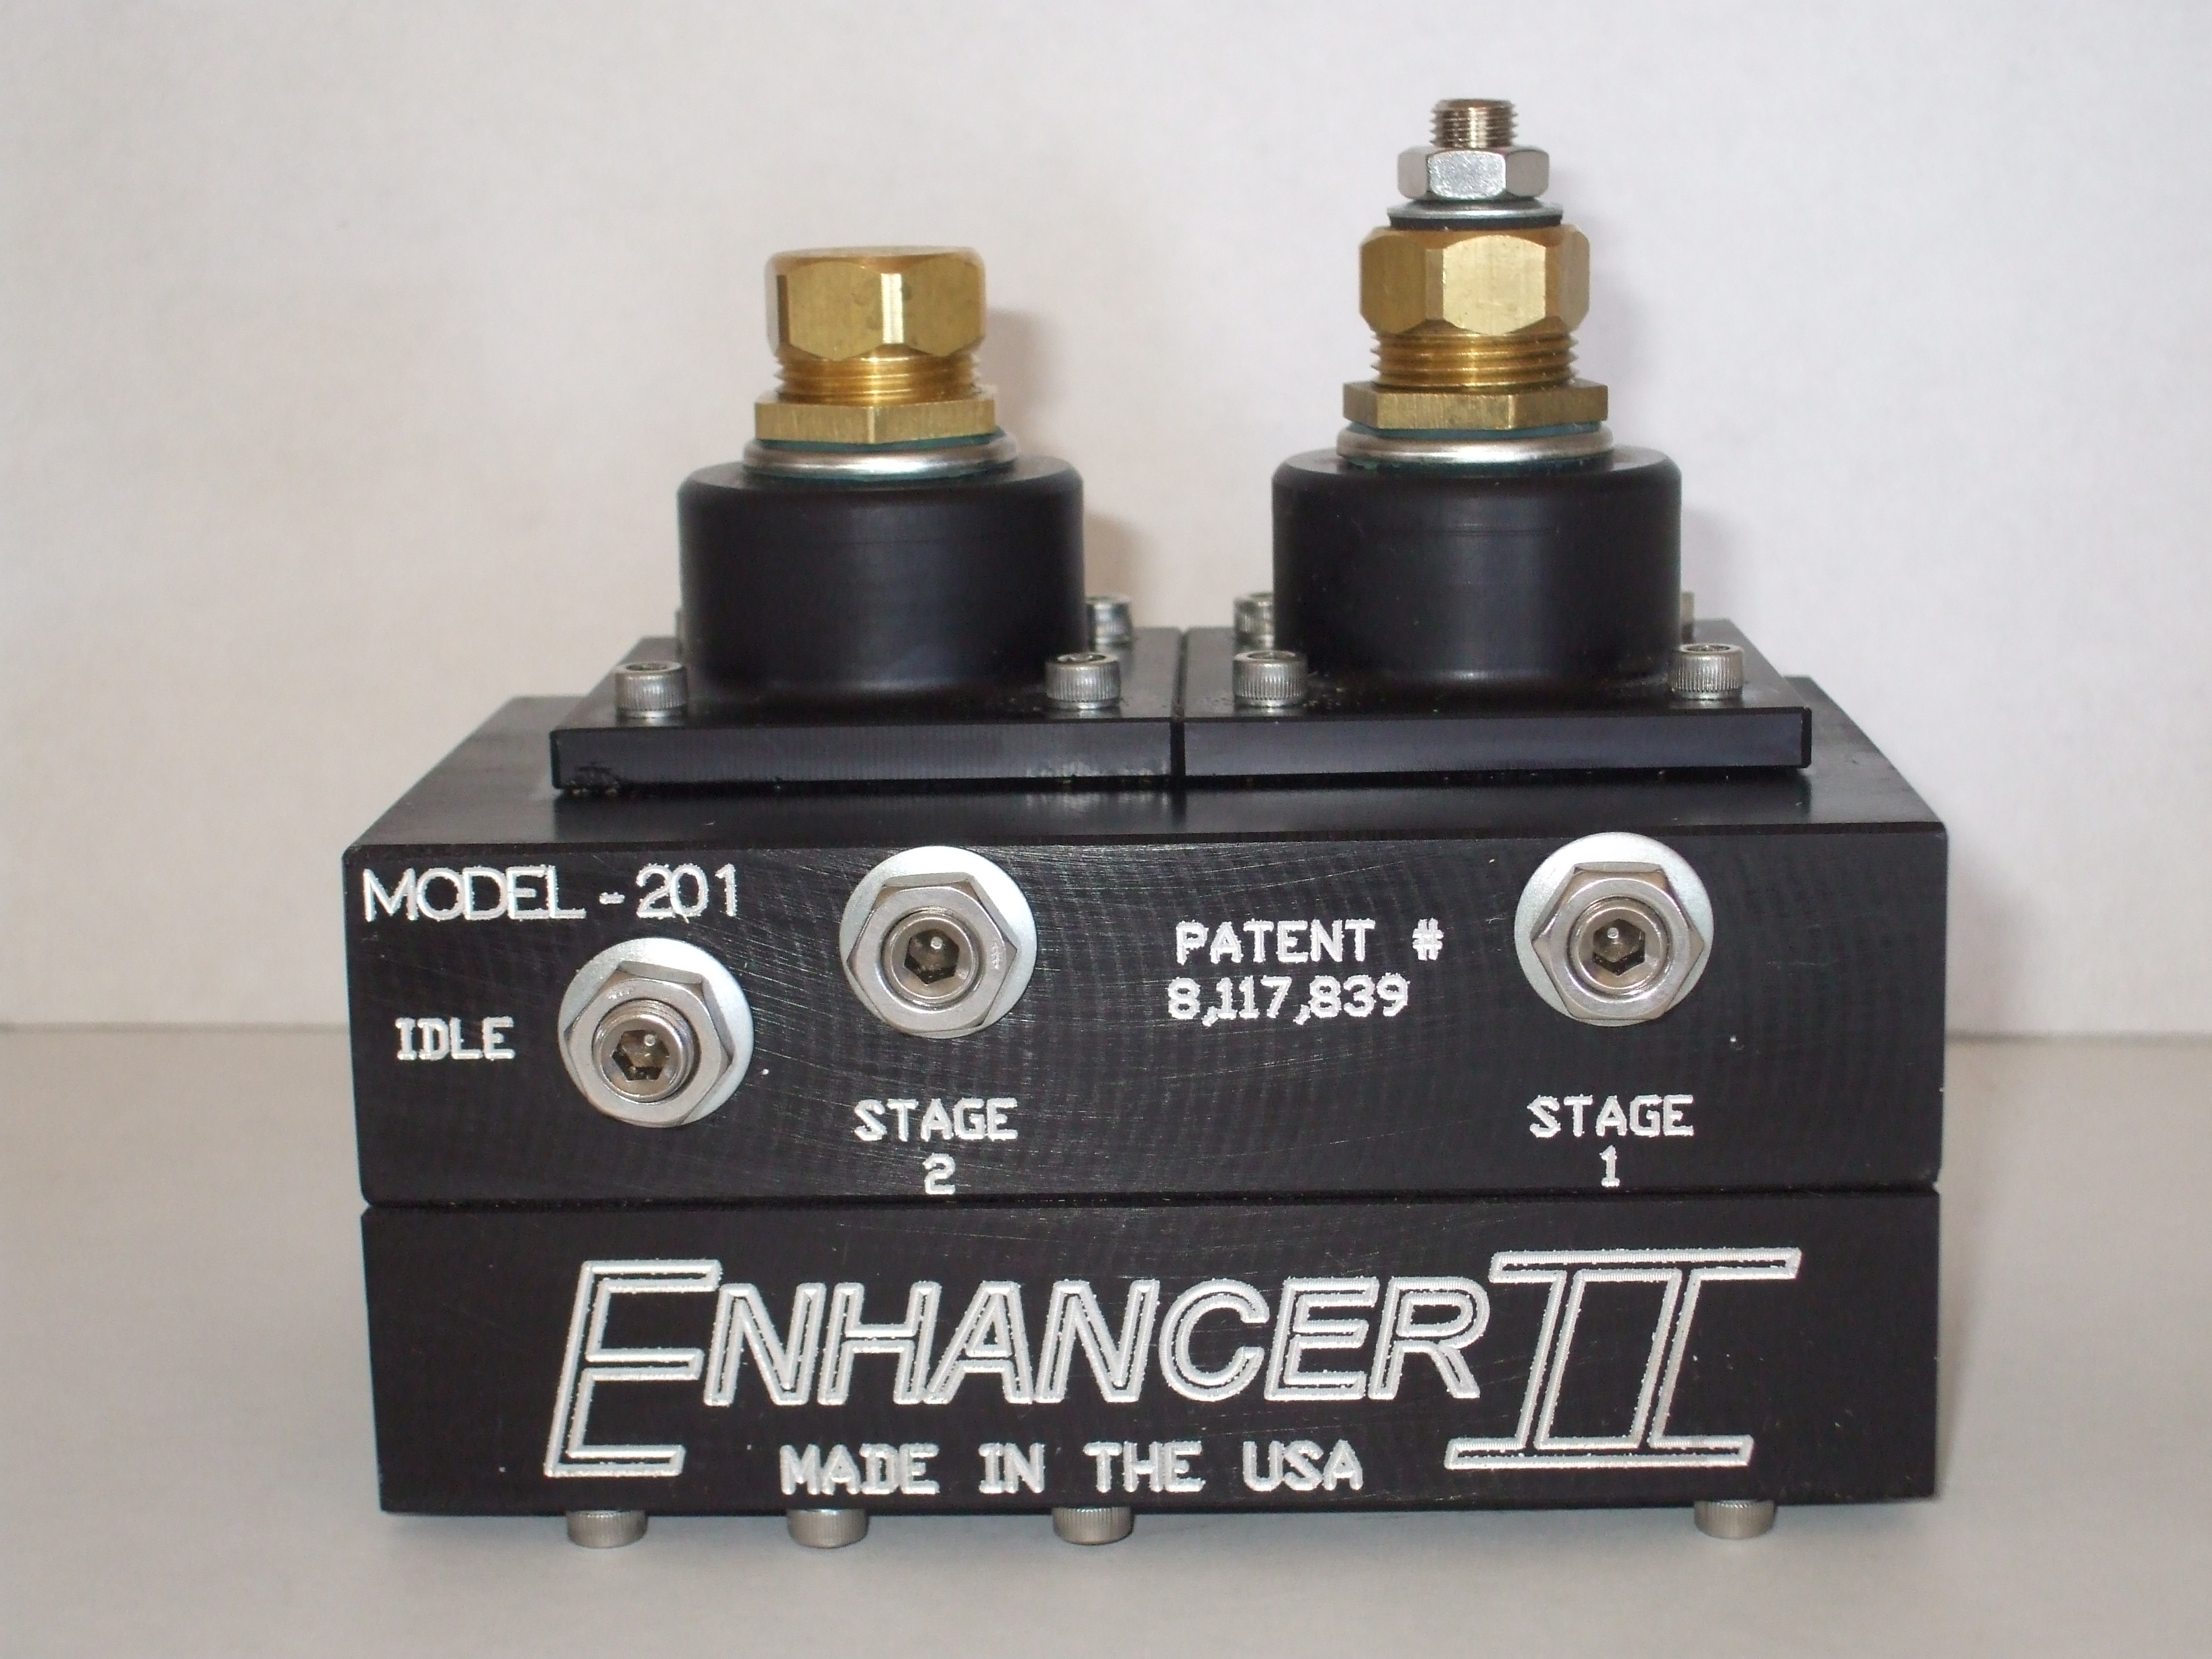 ENHANCER II